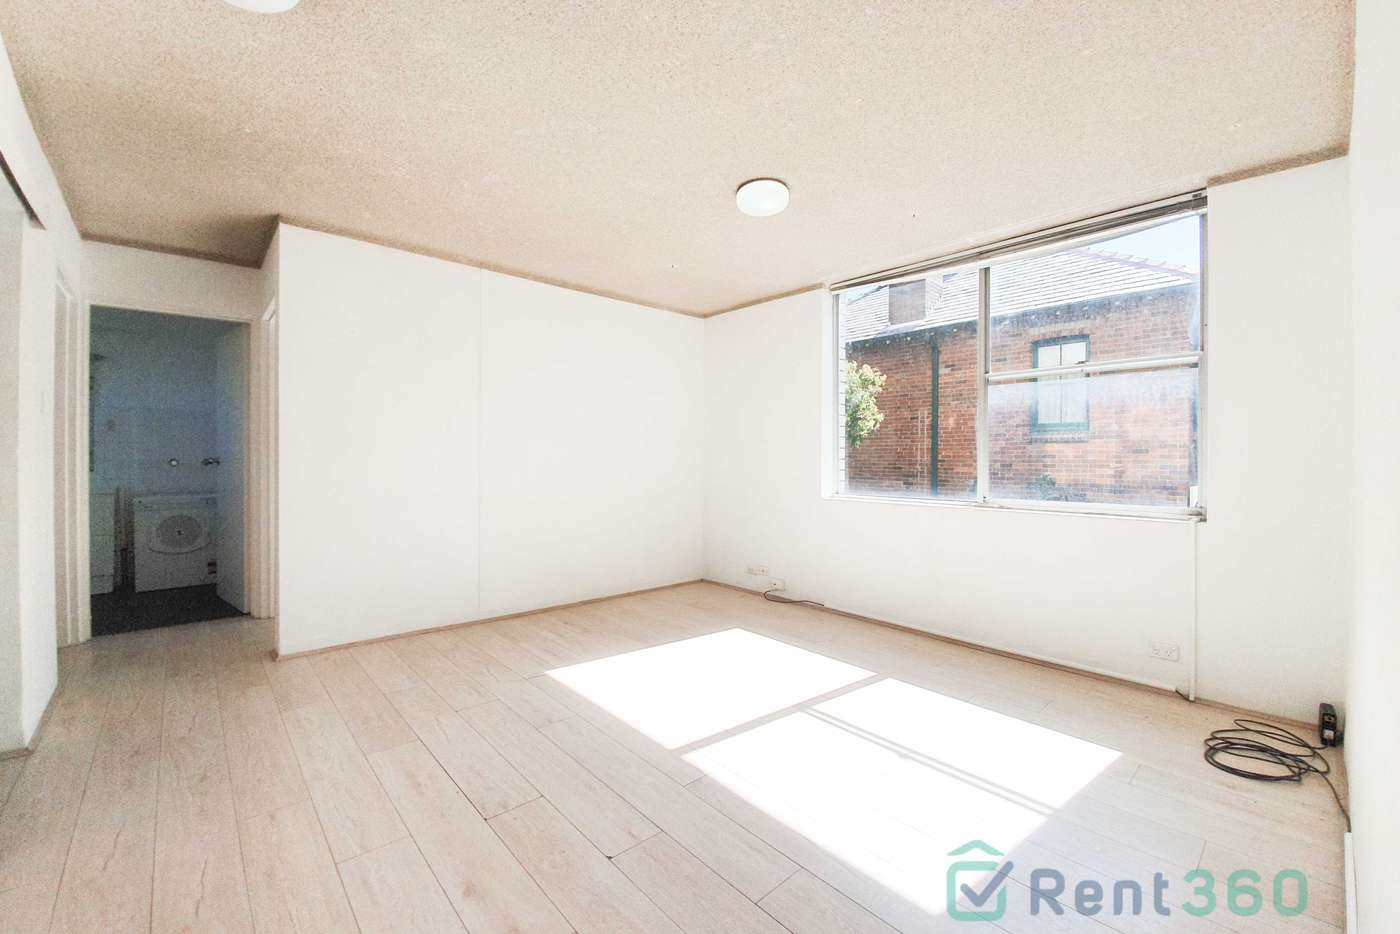 Main view of Homely apartment listing, 1a/105 Cook Road, Centennial Park NSW 2021